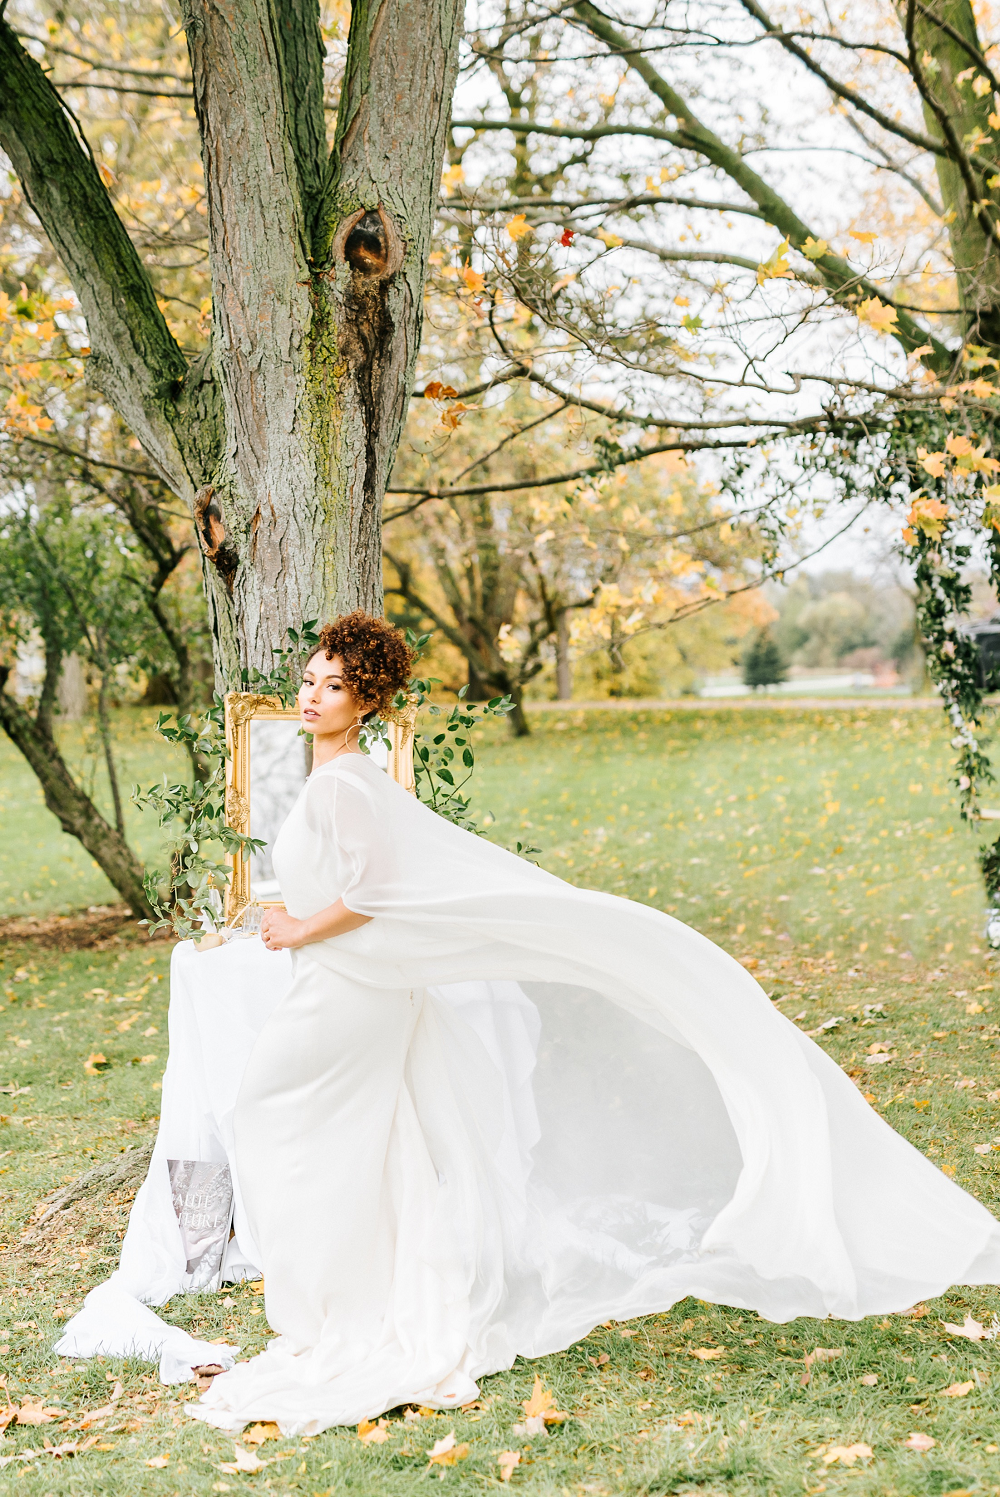 Lush Greenery Wedding Inspired Styled Shoot at Cornman Farms Bride Cape Veil